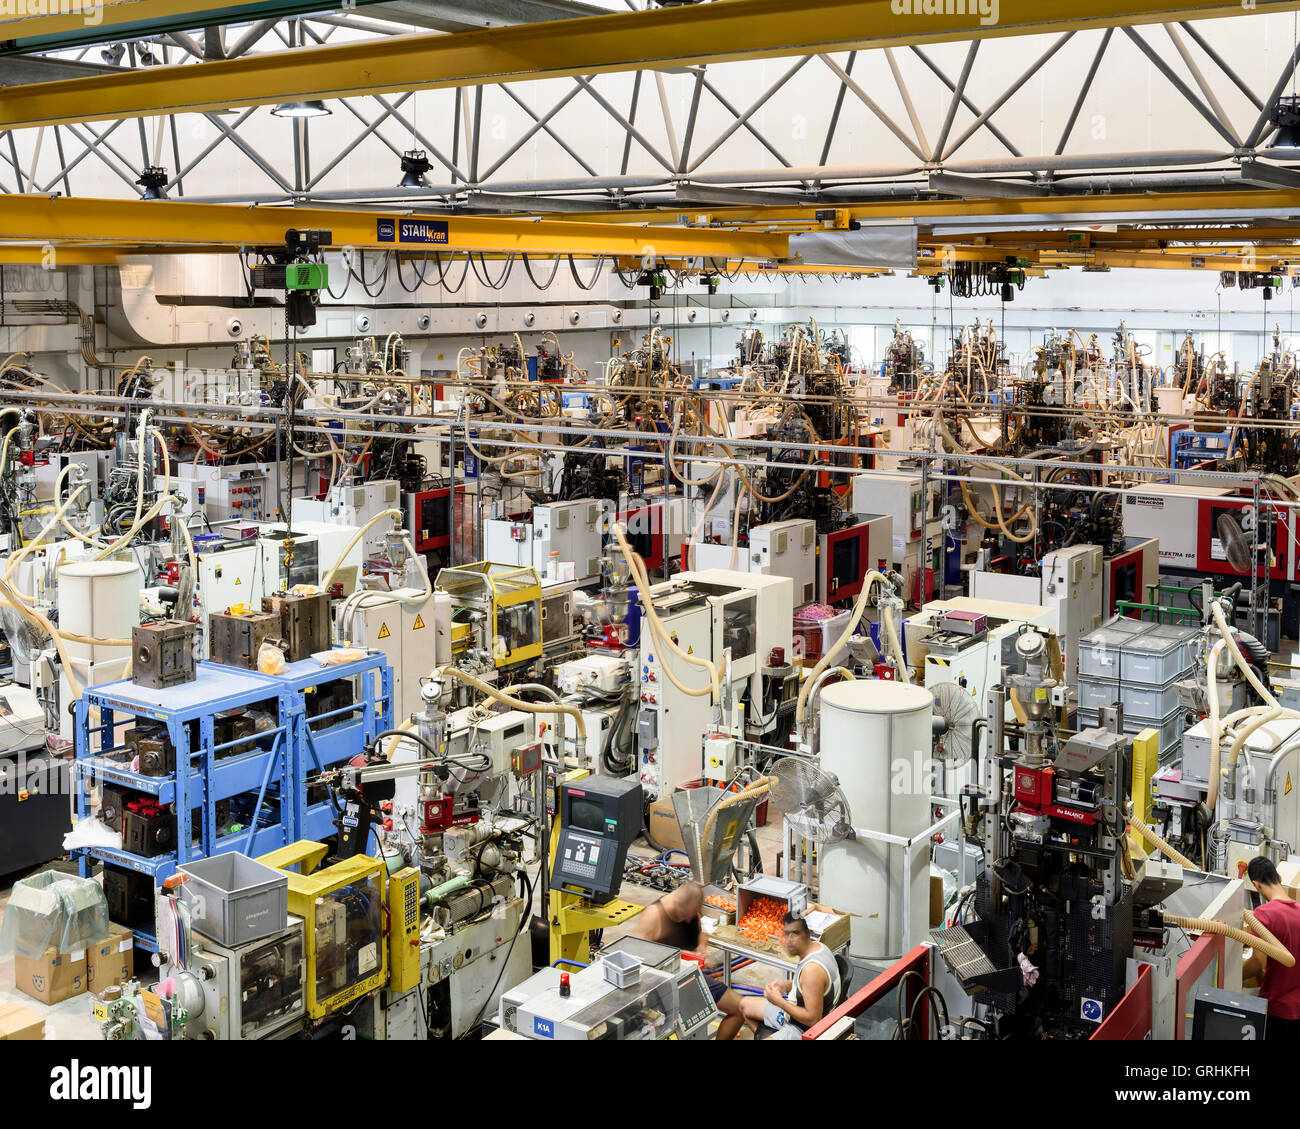 The injection moulding factory floor. Playmobil Factory, Valetta, Malta. Architect: -, 1976. Stock Photo